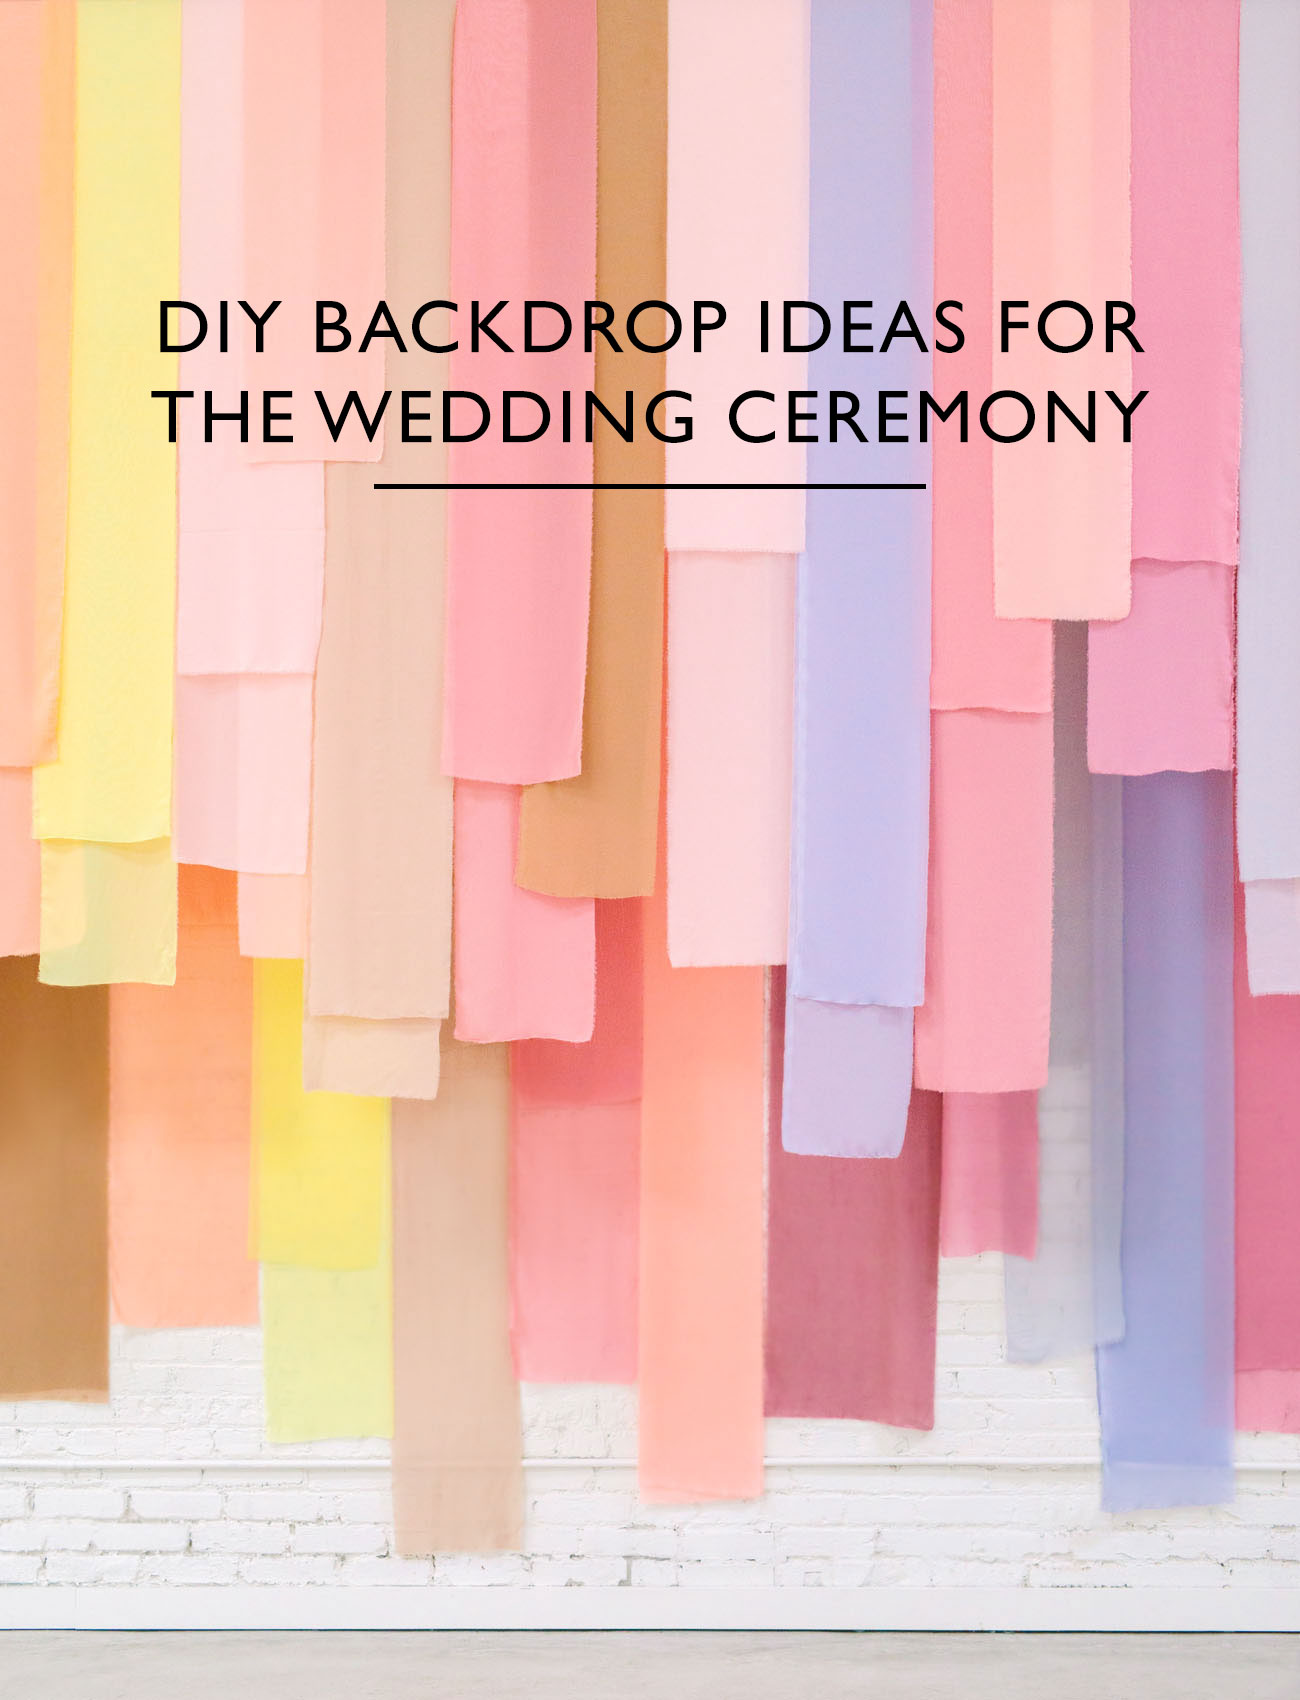 DIY wedding backdrop ideas